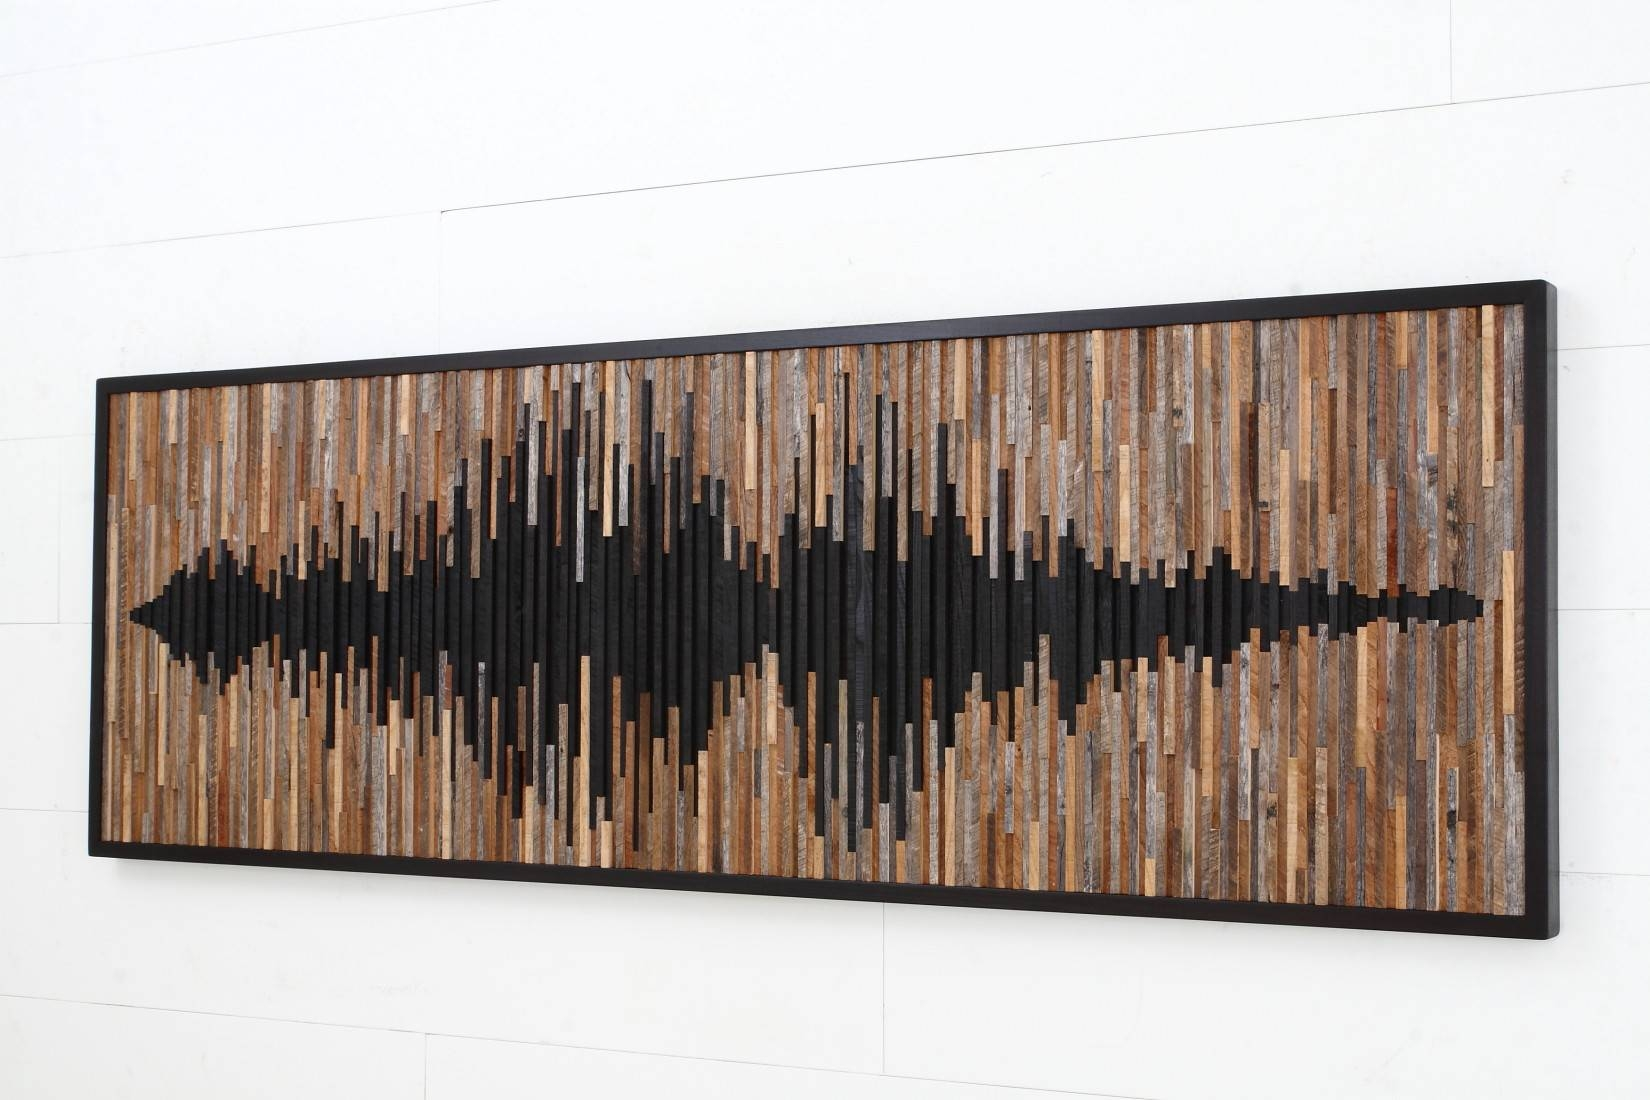 Wall Art Design Ideas: Rustic Slice Abstract Wood Wall Art Amazing In Recent Wall Art On Wood (View 13 of 20)